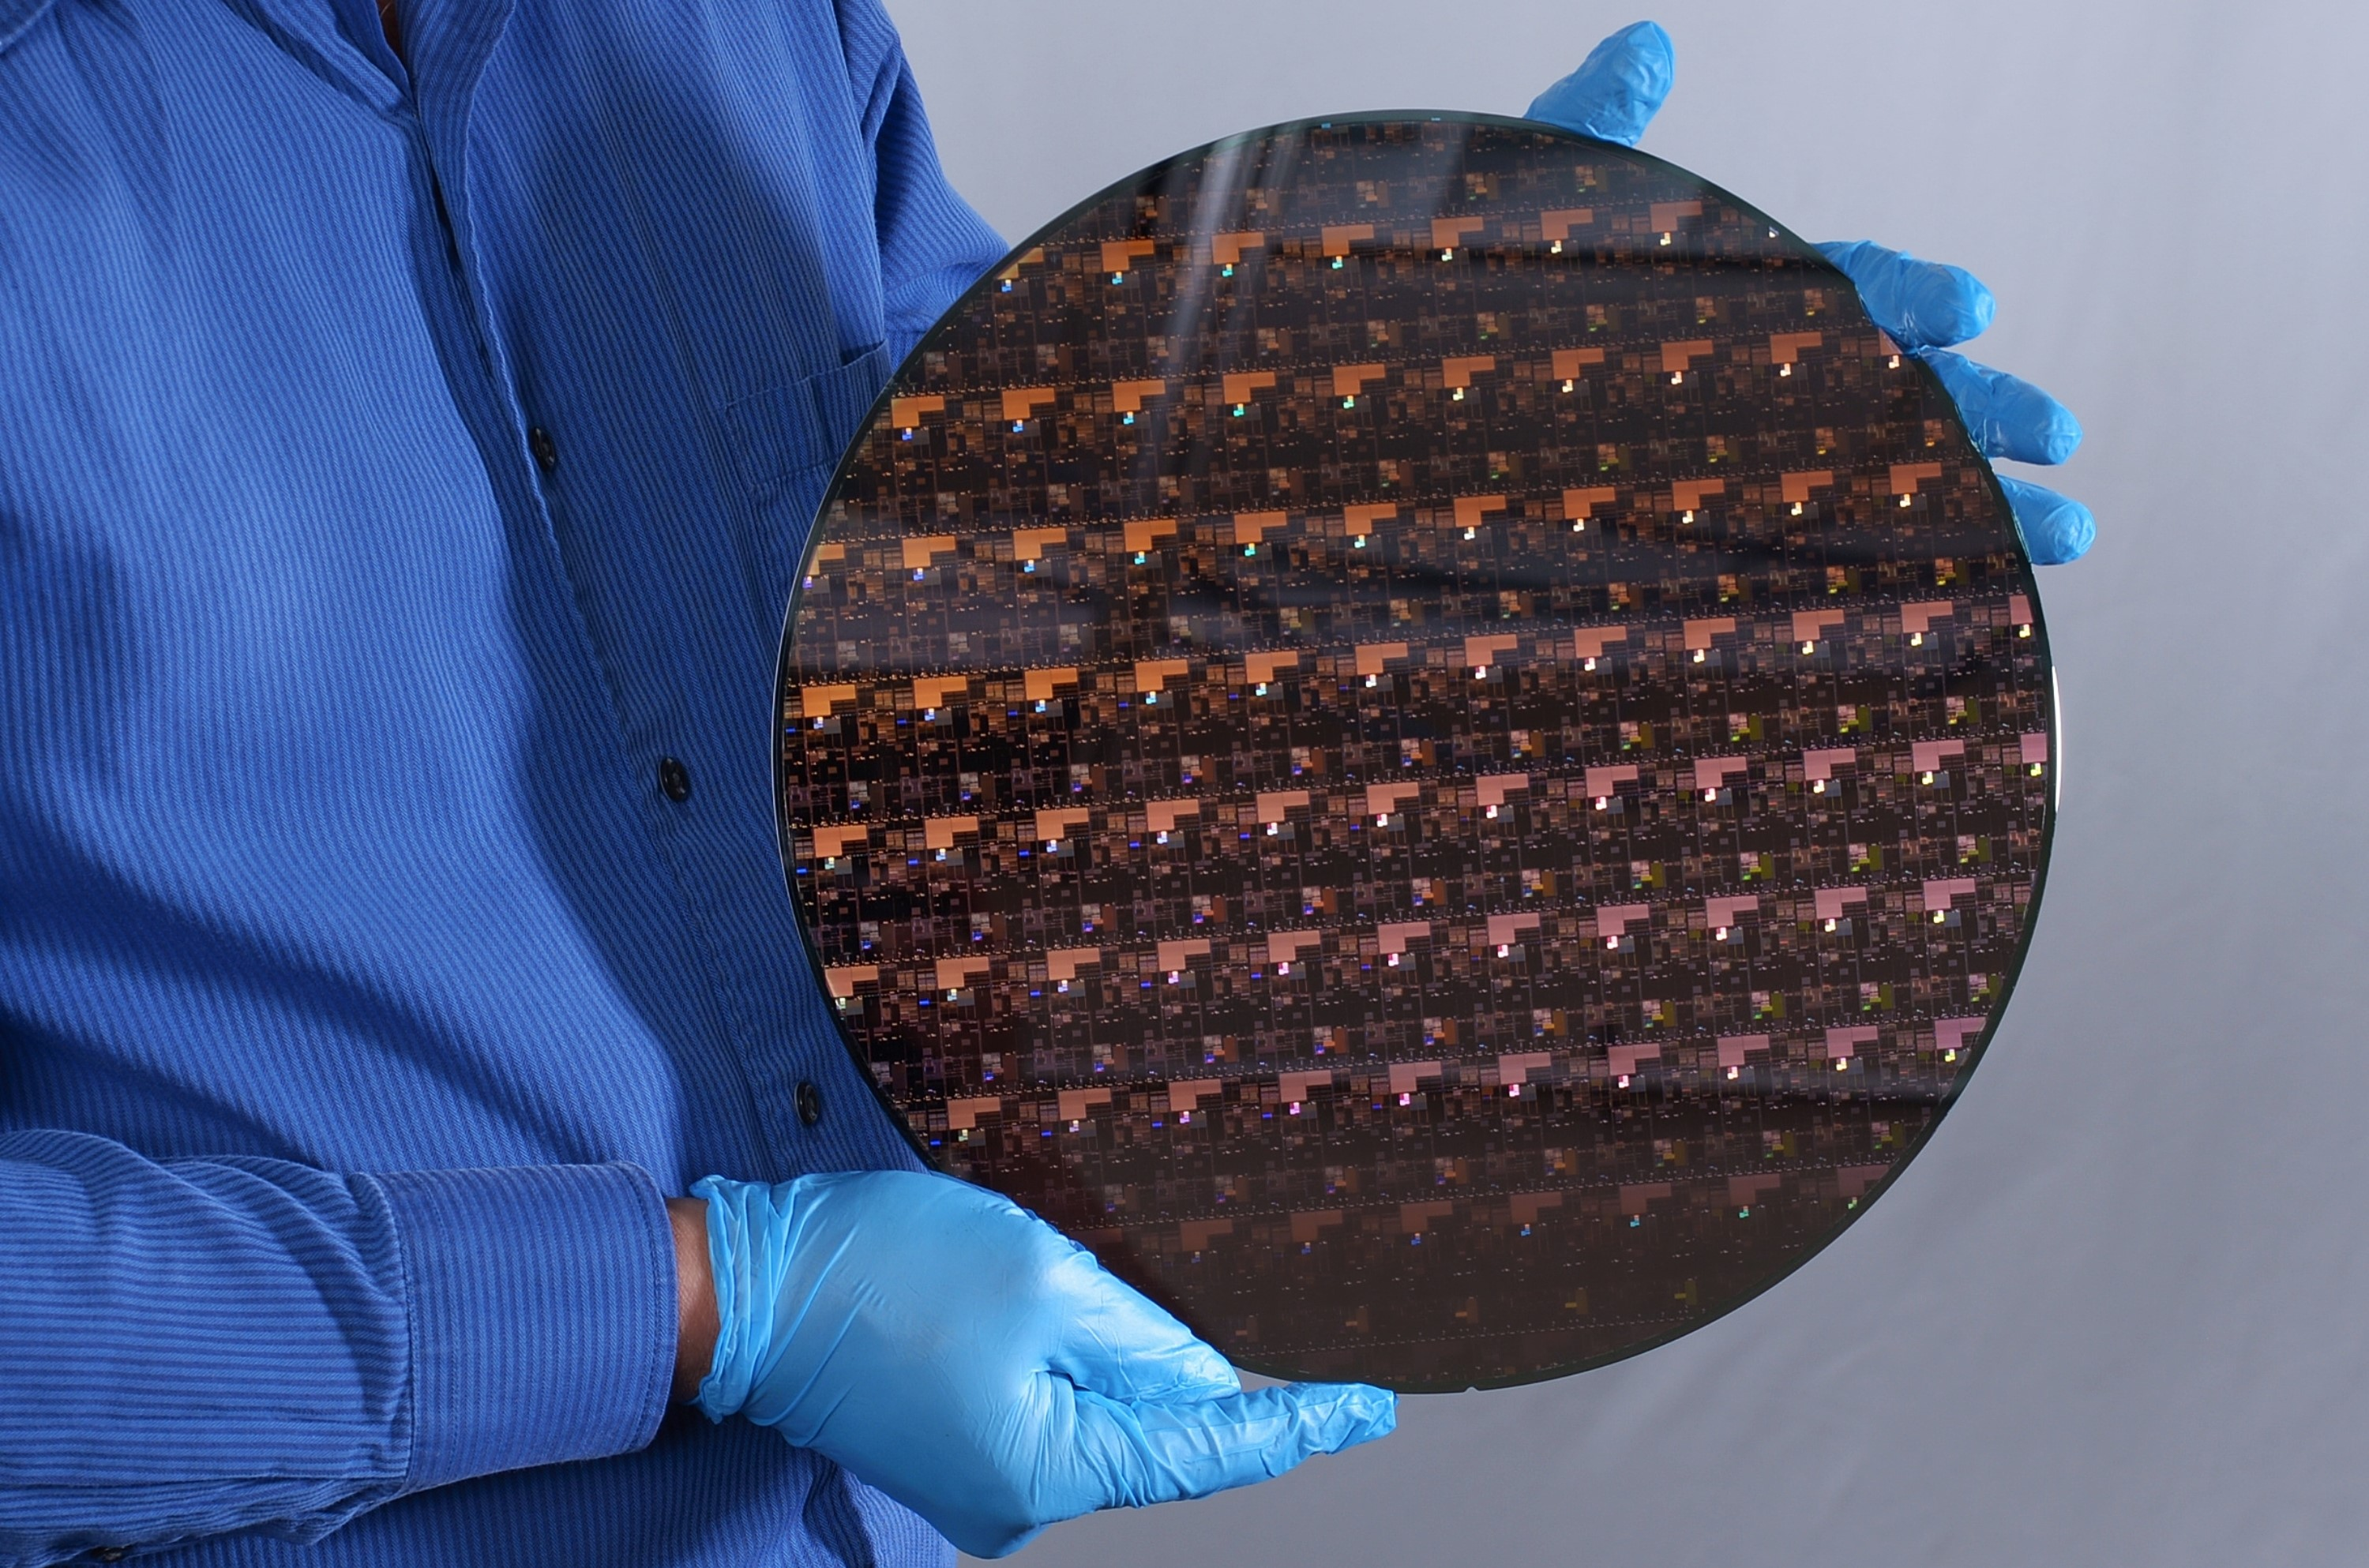 IBM says it has created the world's first 2nm chip | Engadget